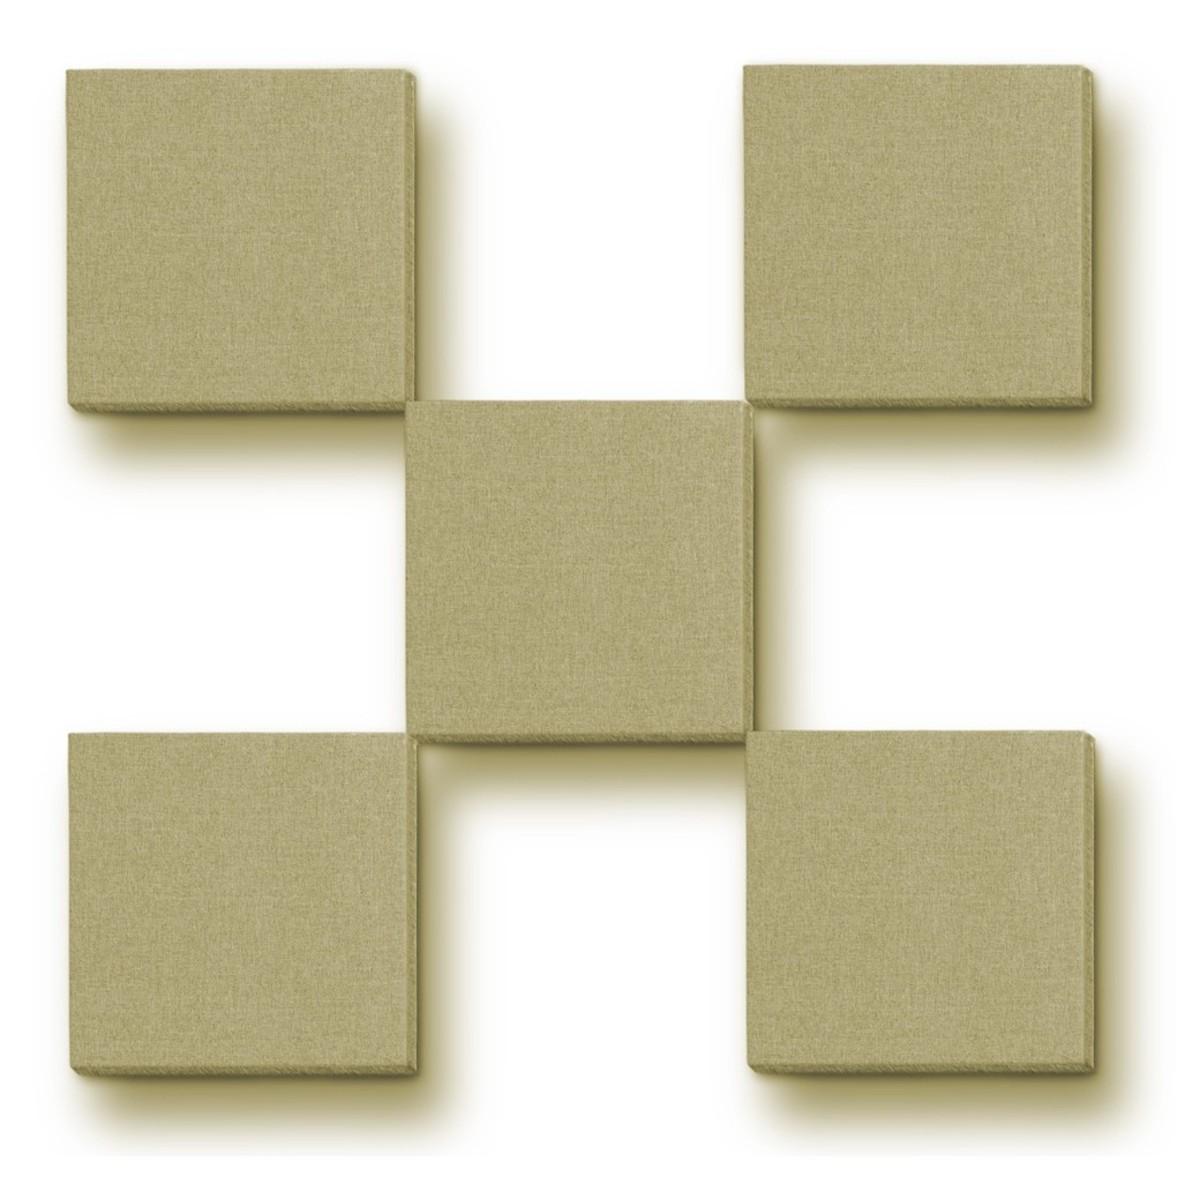 Primacoustic 1 Scatter Block With Beveled Edge In Beige Pack Of 24